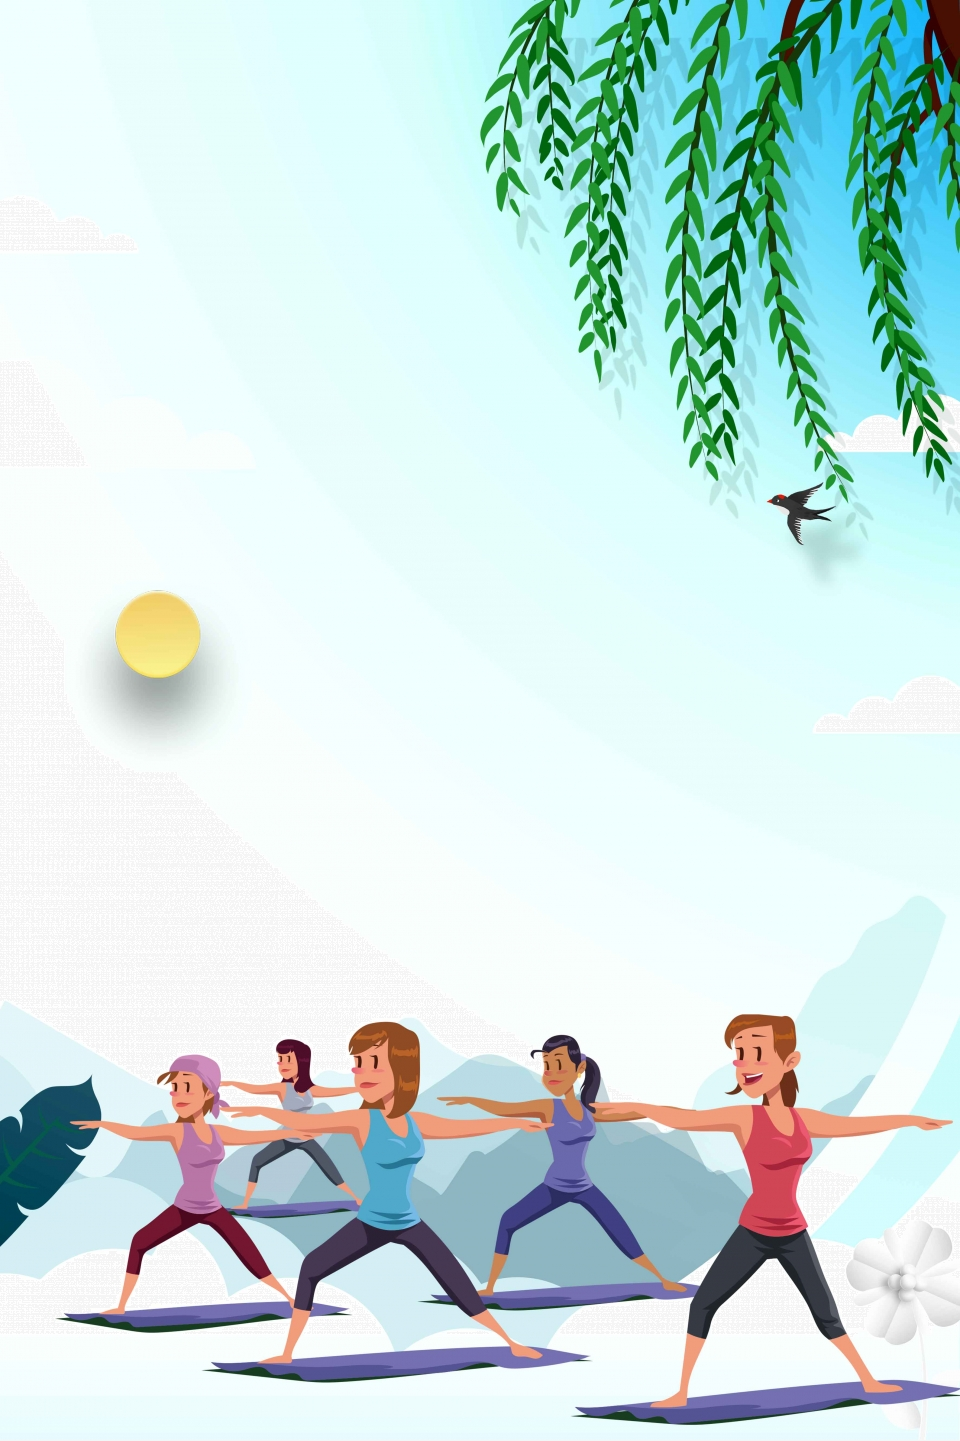 Health Yoga Poster Background Material Health Yoga Gold Yoga Indian Yoga Background Image For Free Download